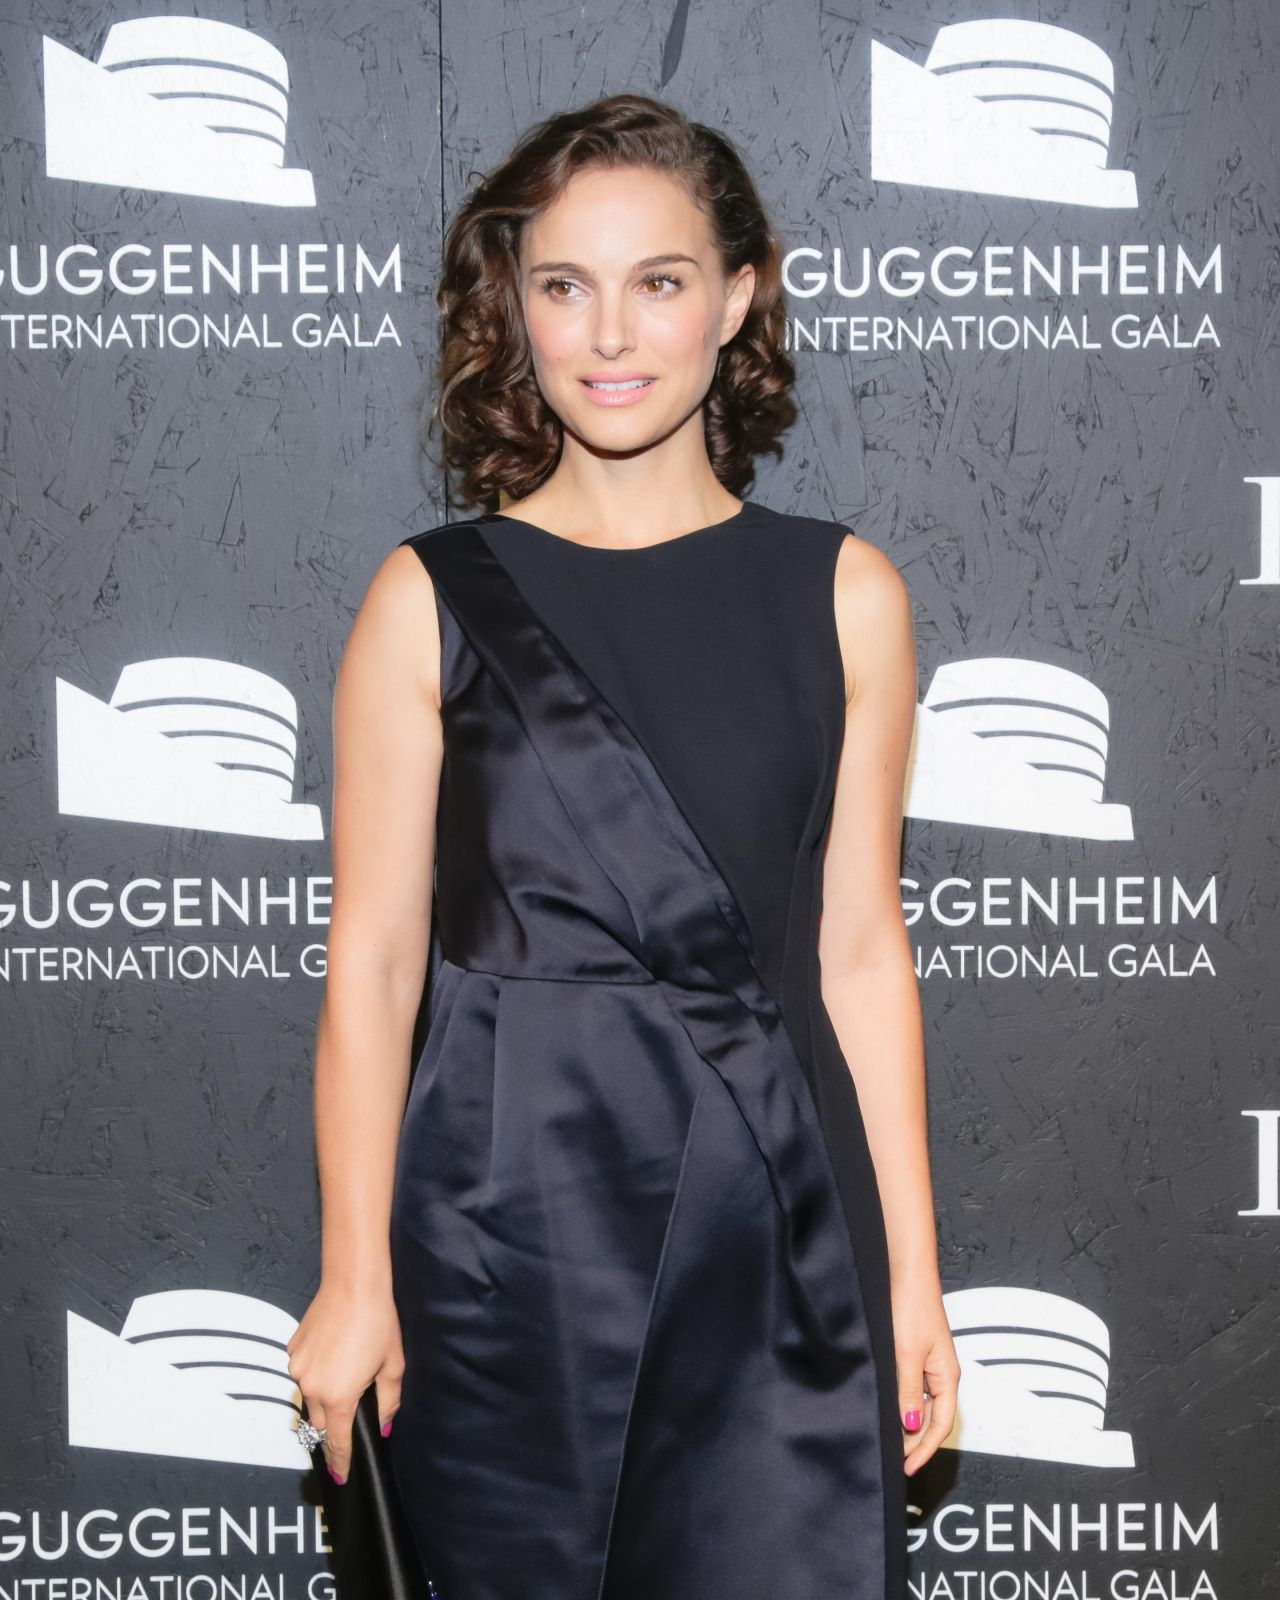 Natalie Portman - 2013 Guggenheim International Gala